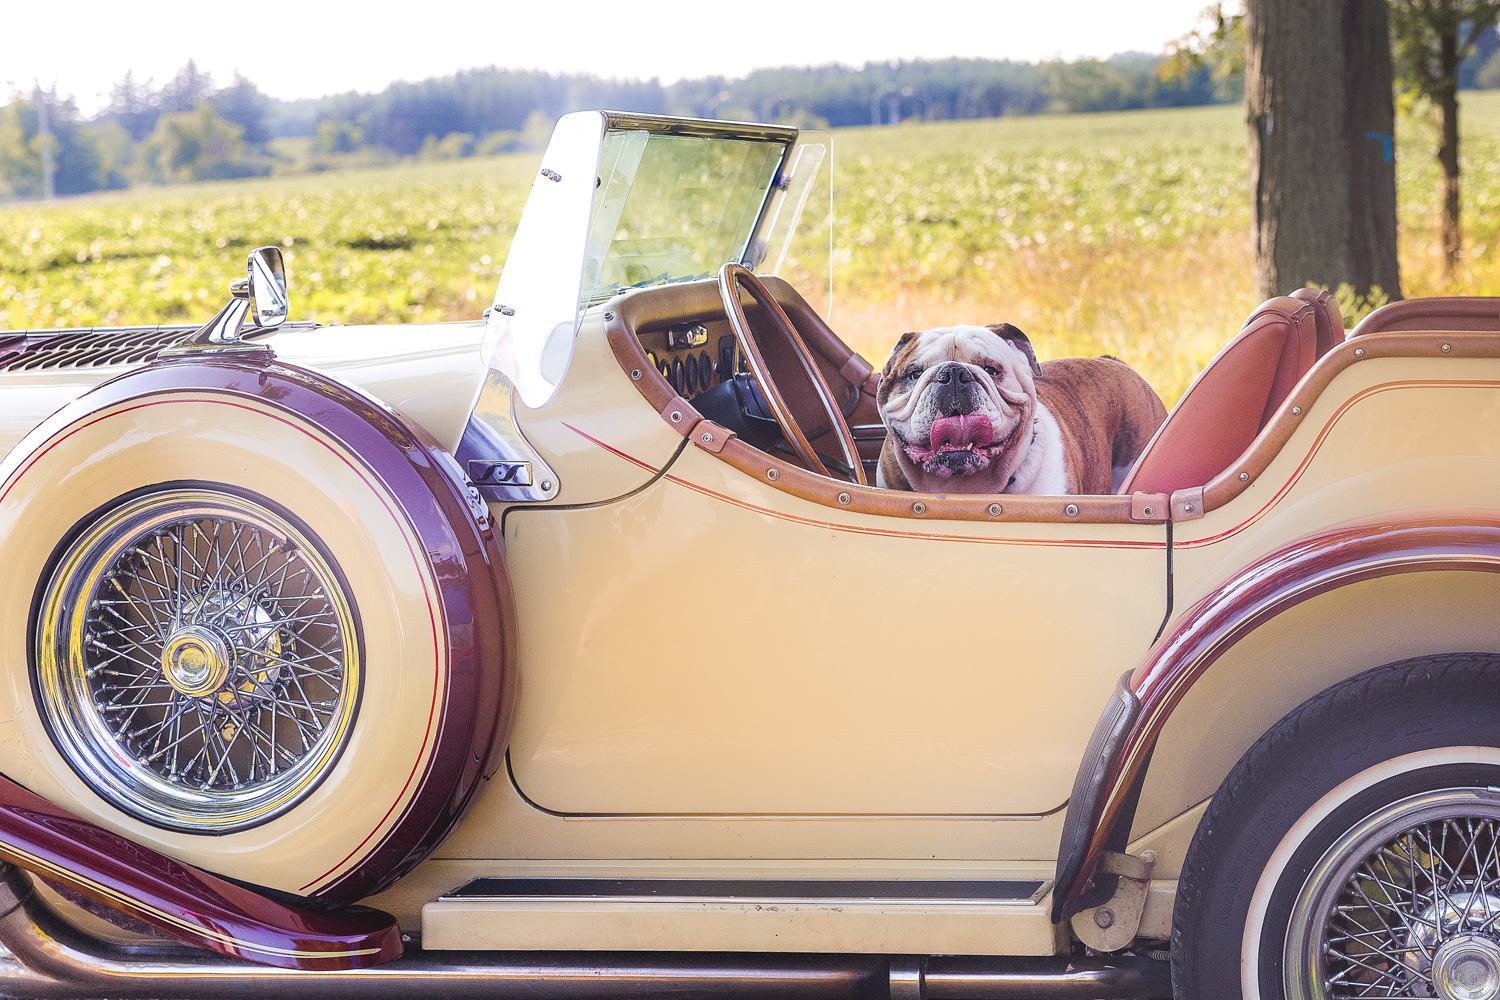 THIS BULLDOG IS HAPPY IN A CLASSIC EXCALIBUR CAR!